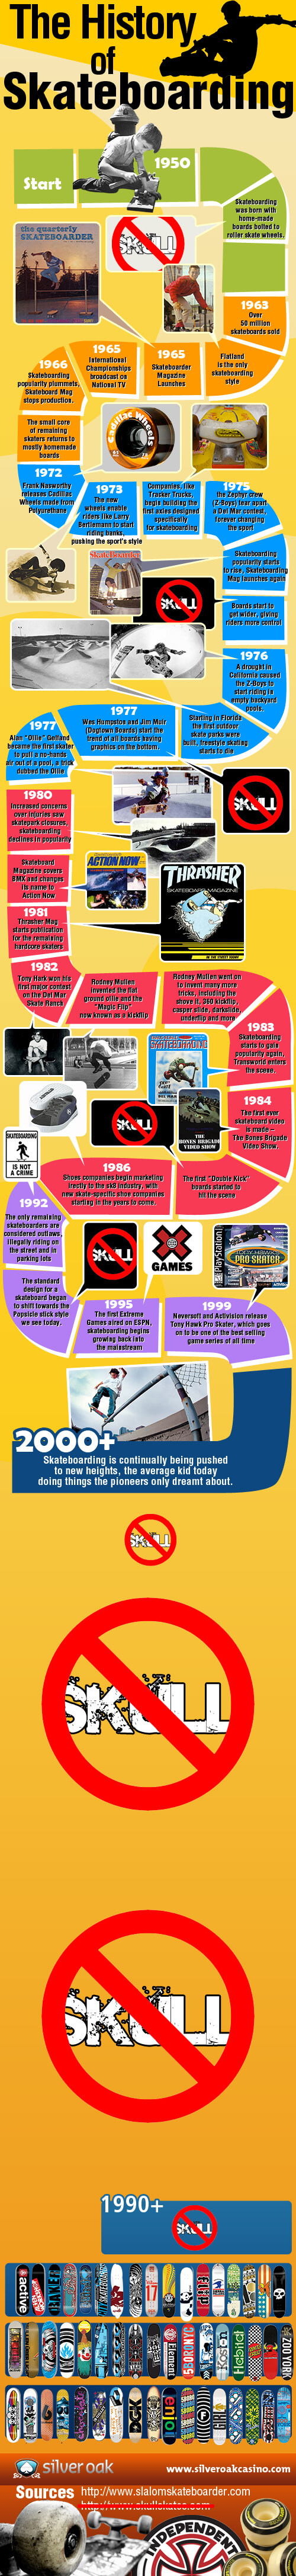 history of skateboarding infographic